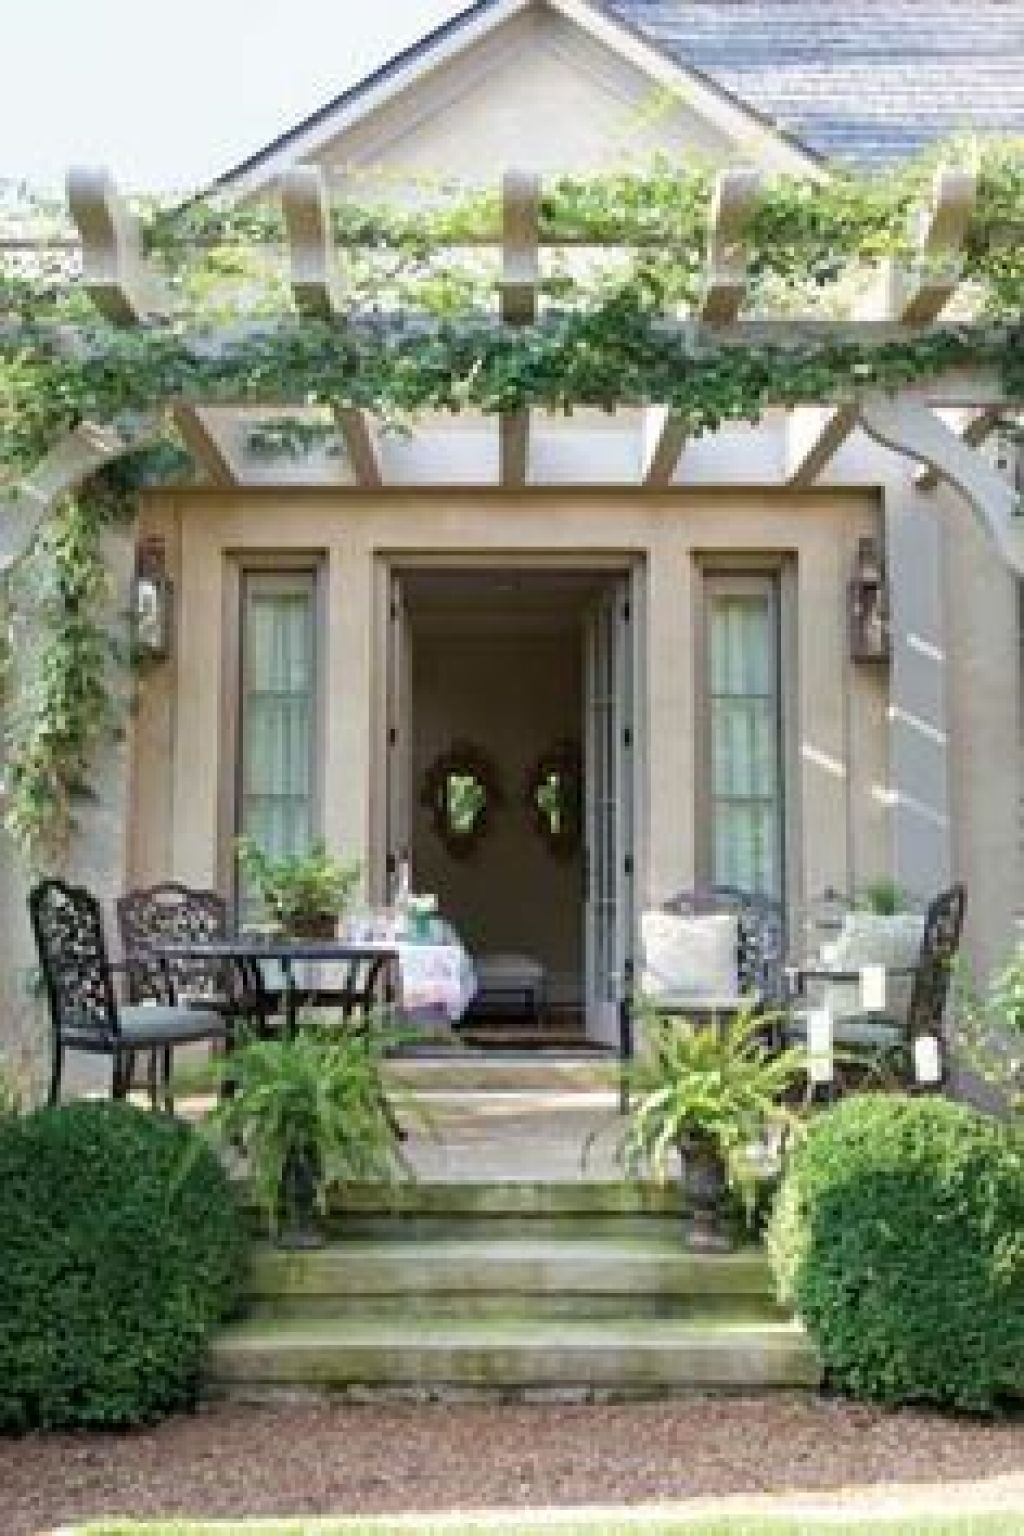 1000 ideas about front porch pergola on pinterest pergolas for Front patio ideas